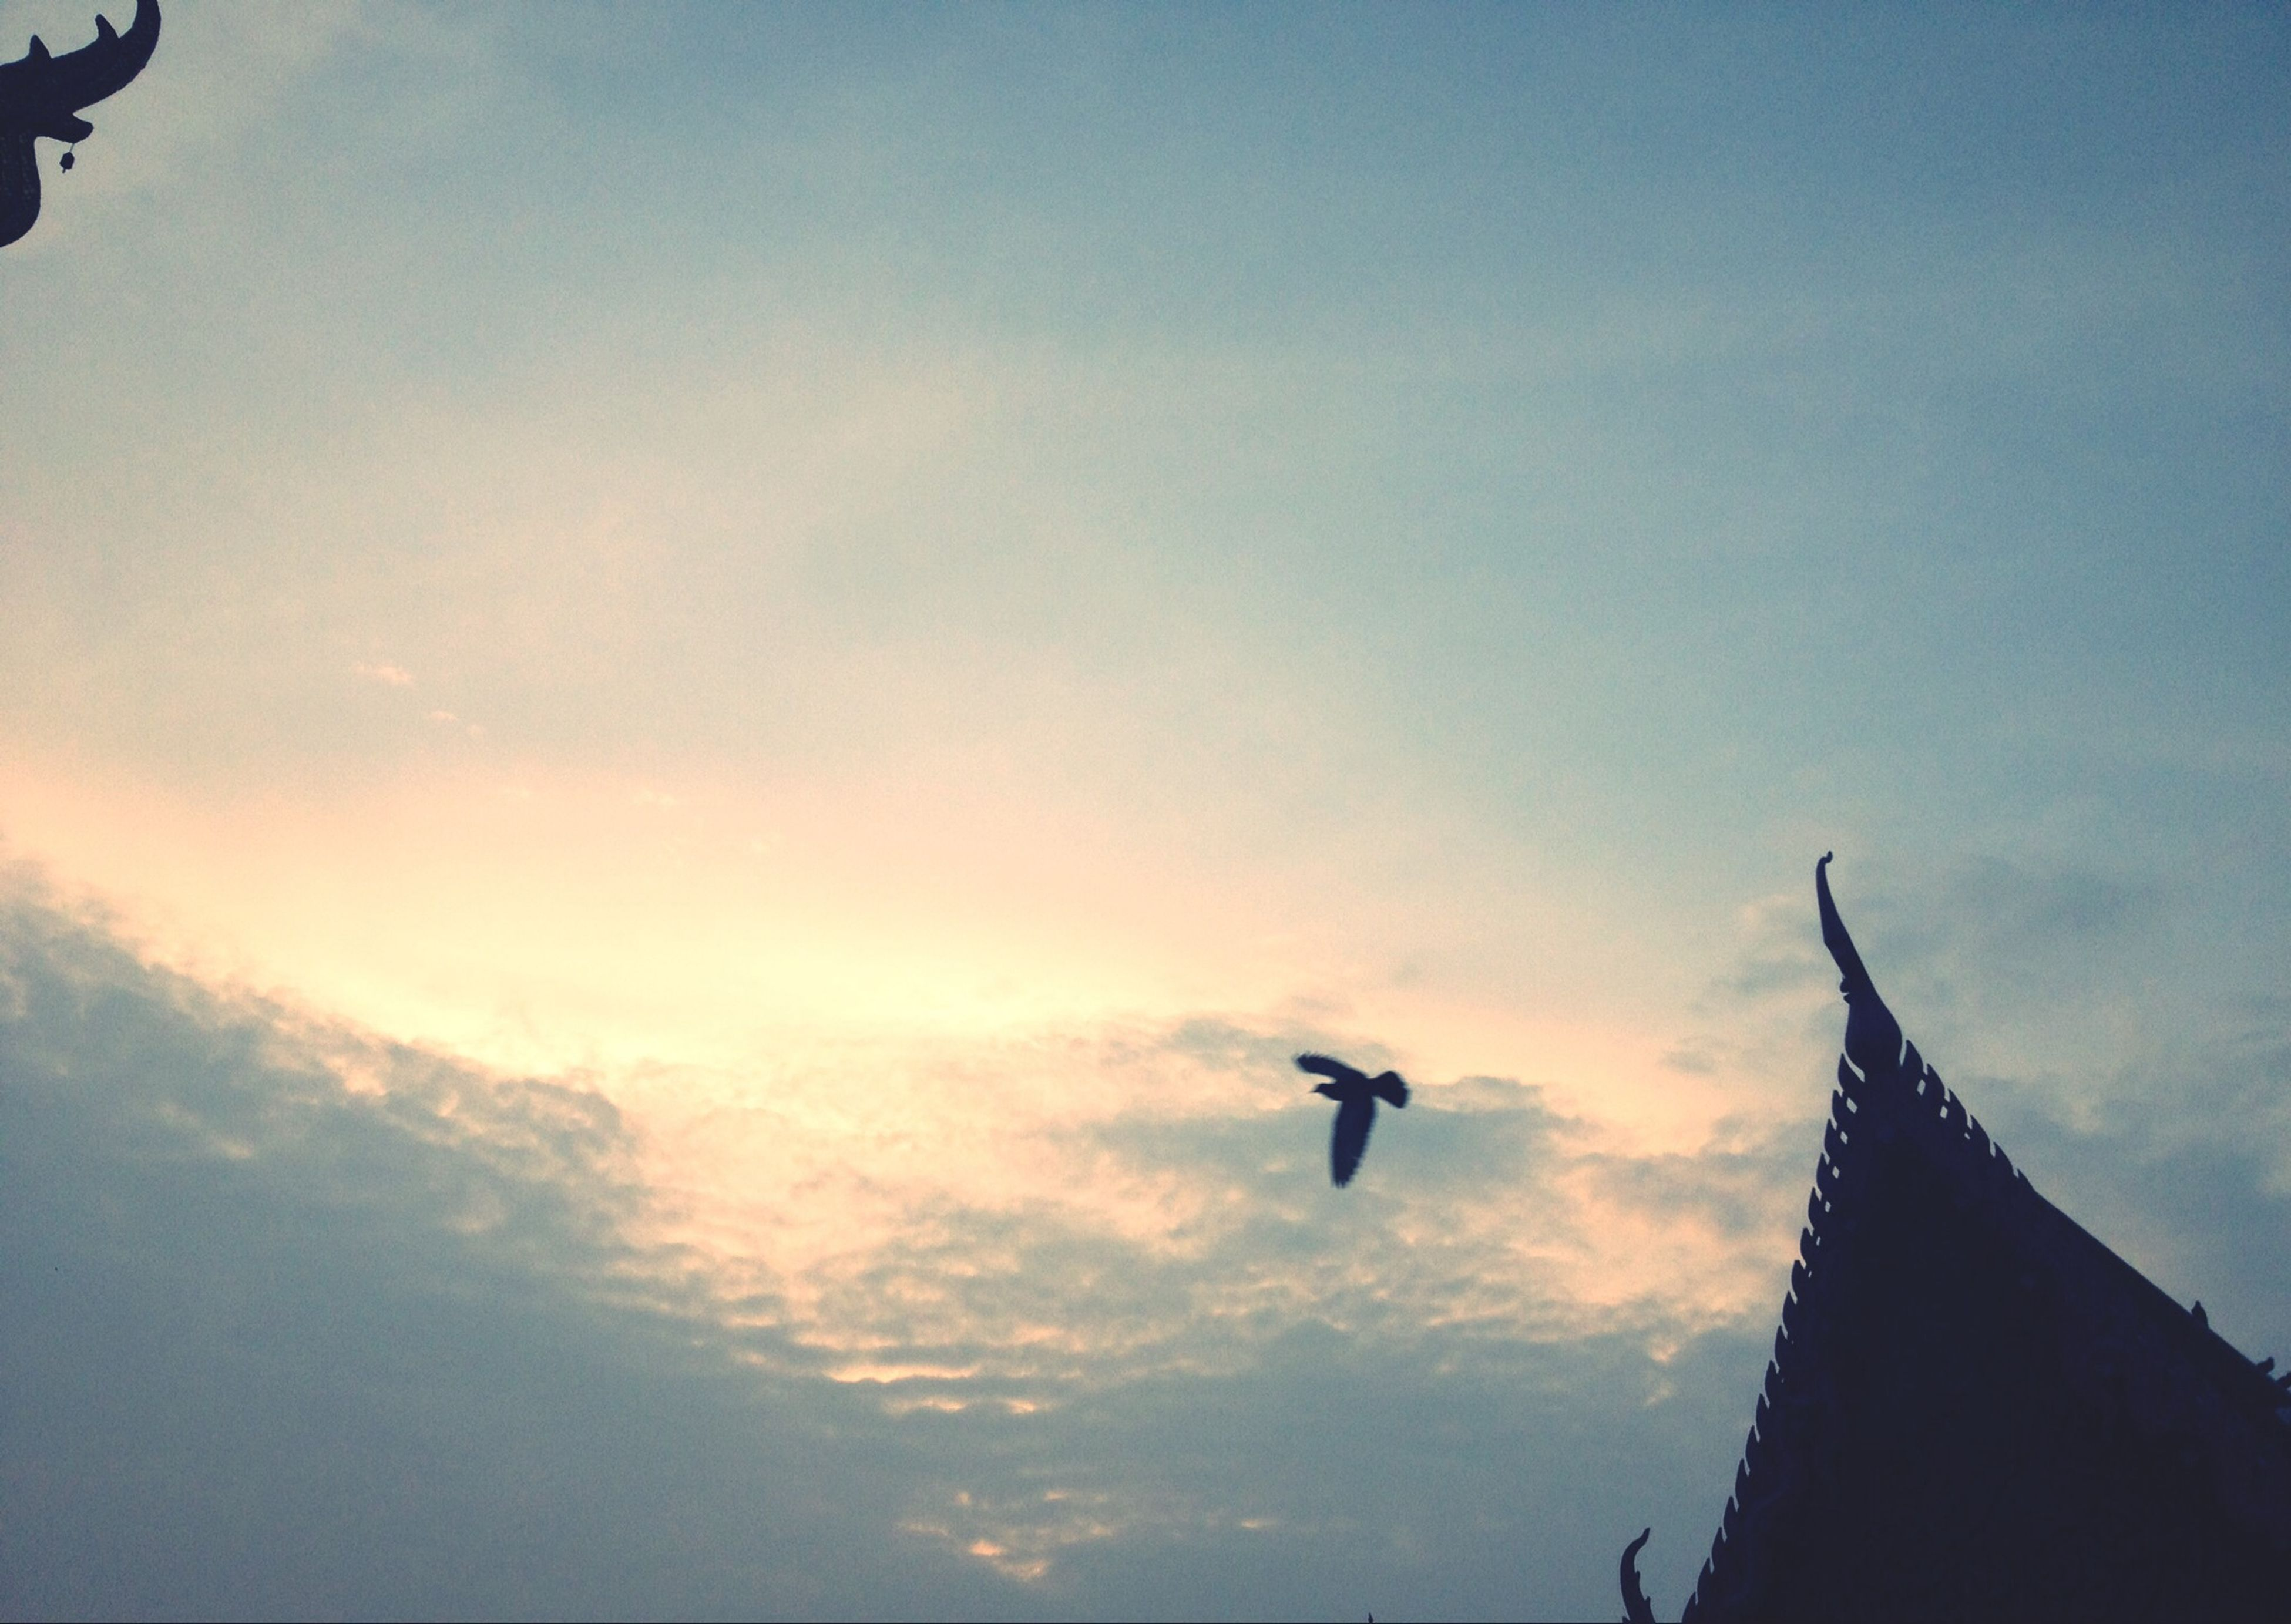 low angle view, bird, flying, animal themes, sky, architecture, animals in the wild, building exterior, built structure, wildlife, one animal, mid-air, silhouette, cloud - sky, spread wings, cloud, outdoors, no people, day, city